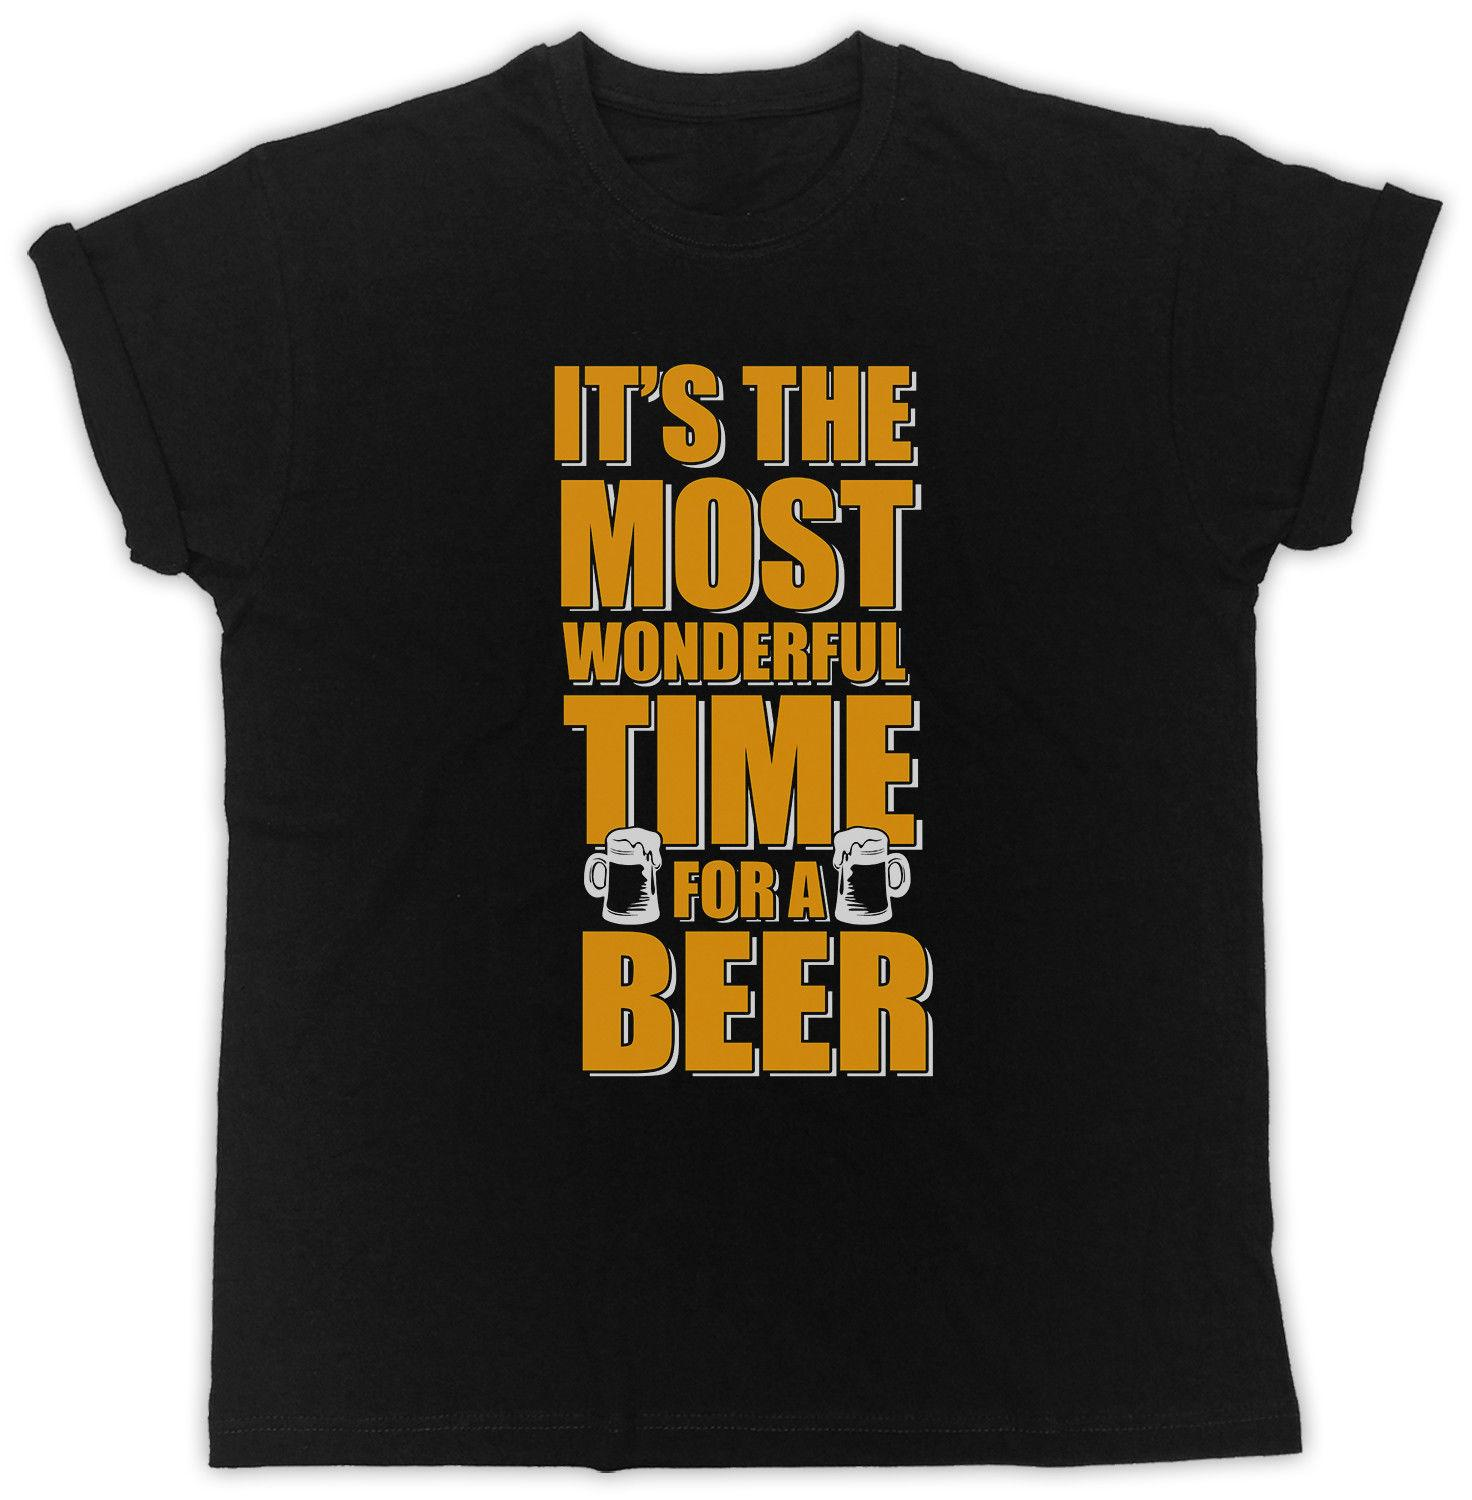 0d0d63d61 IT'S THE MOST WONDERFUL TIME FOR A BEER SLOGAN IDEAL GIFT UNISEX BLACK T  SHIRTFunny Unisex Casual Tshirt Shirts T Funky T Shirts For Women From ...